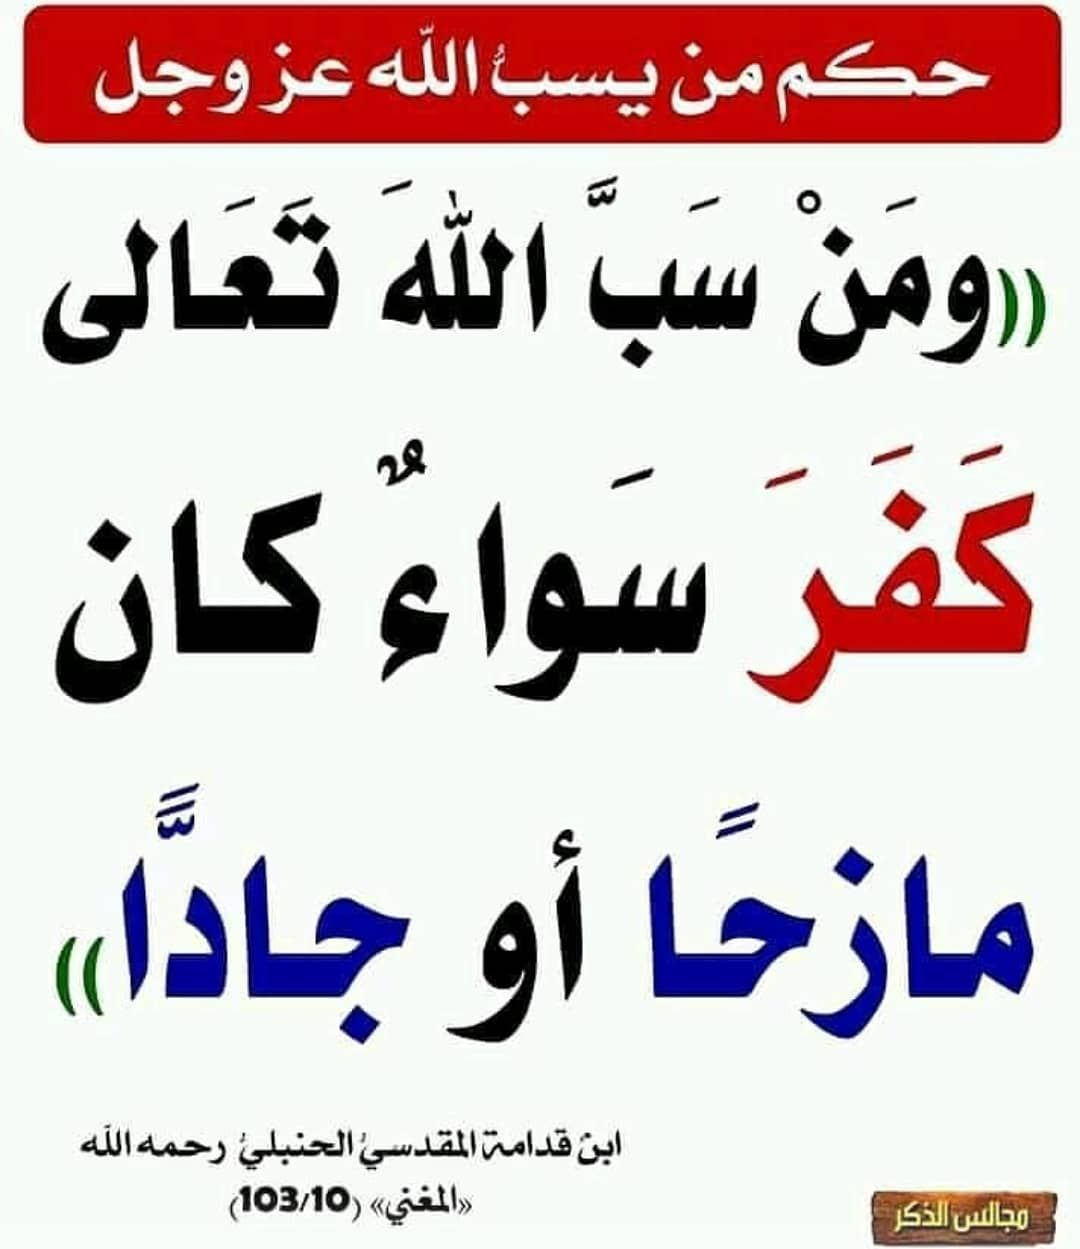 Pin By منوعات مفيدة On إسلاميات Words Quotes Islam Facts Quotes